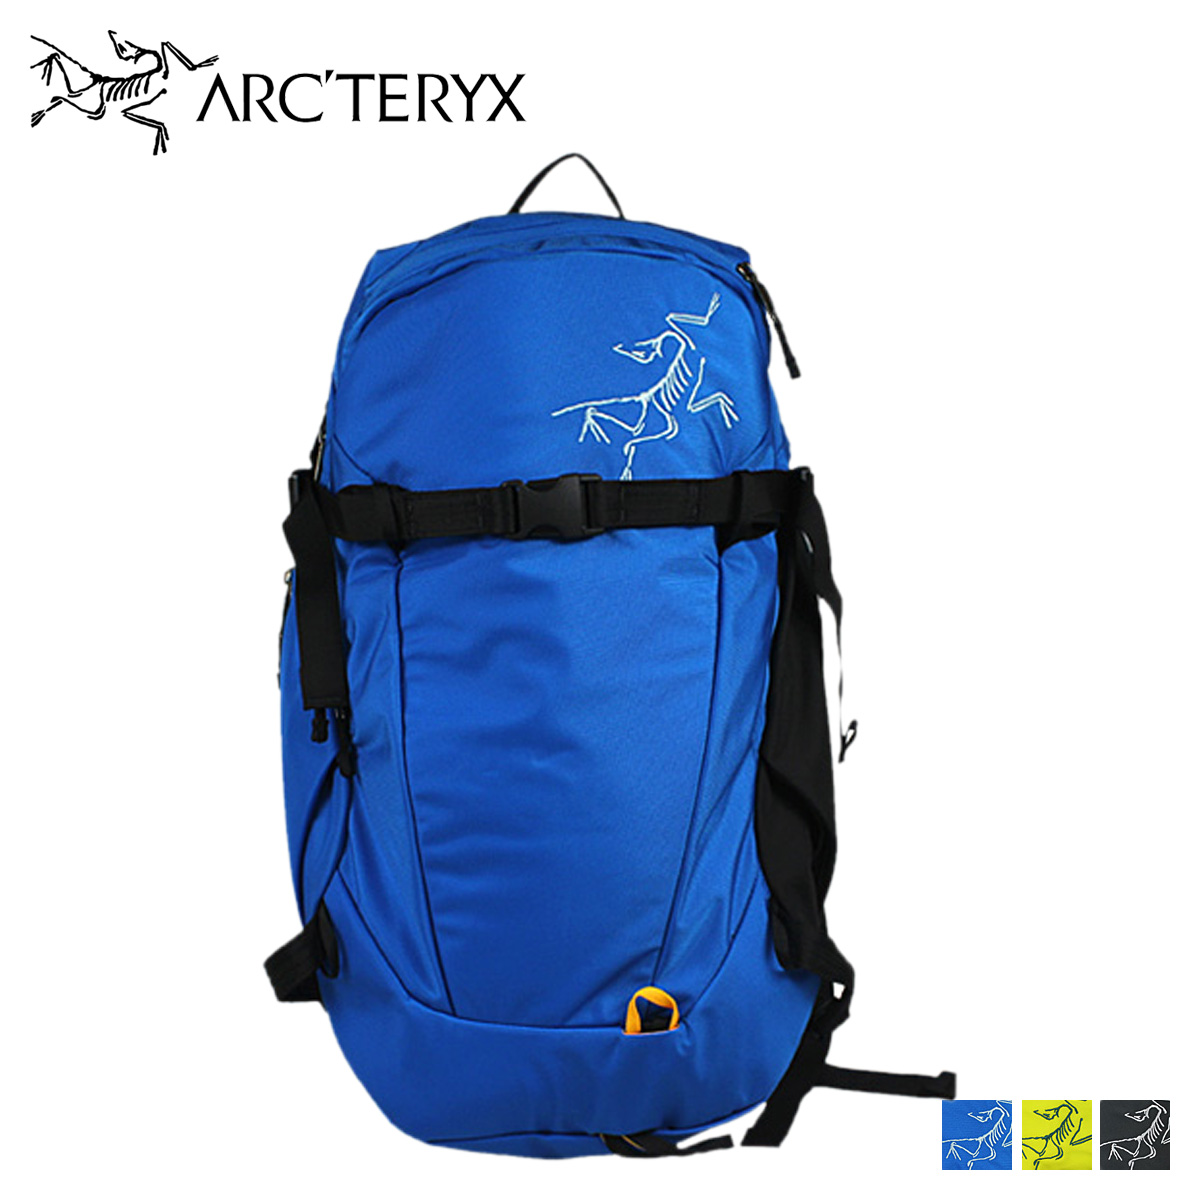 b7c74597eb Arc'Teryx ARC ' TERYX backpack 3 color 9508 QUINTIC 28 daypack backpack  mens unisex ...